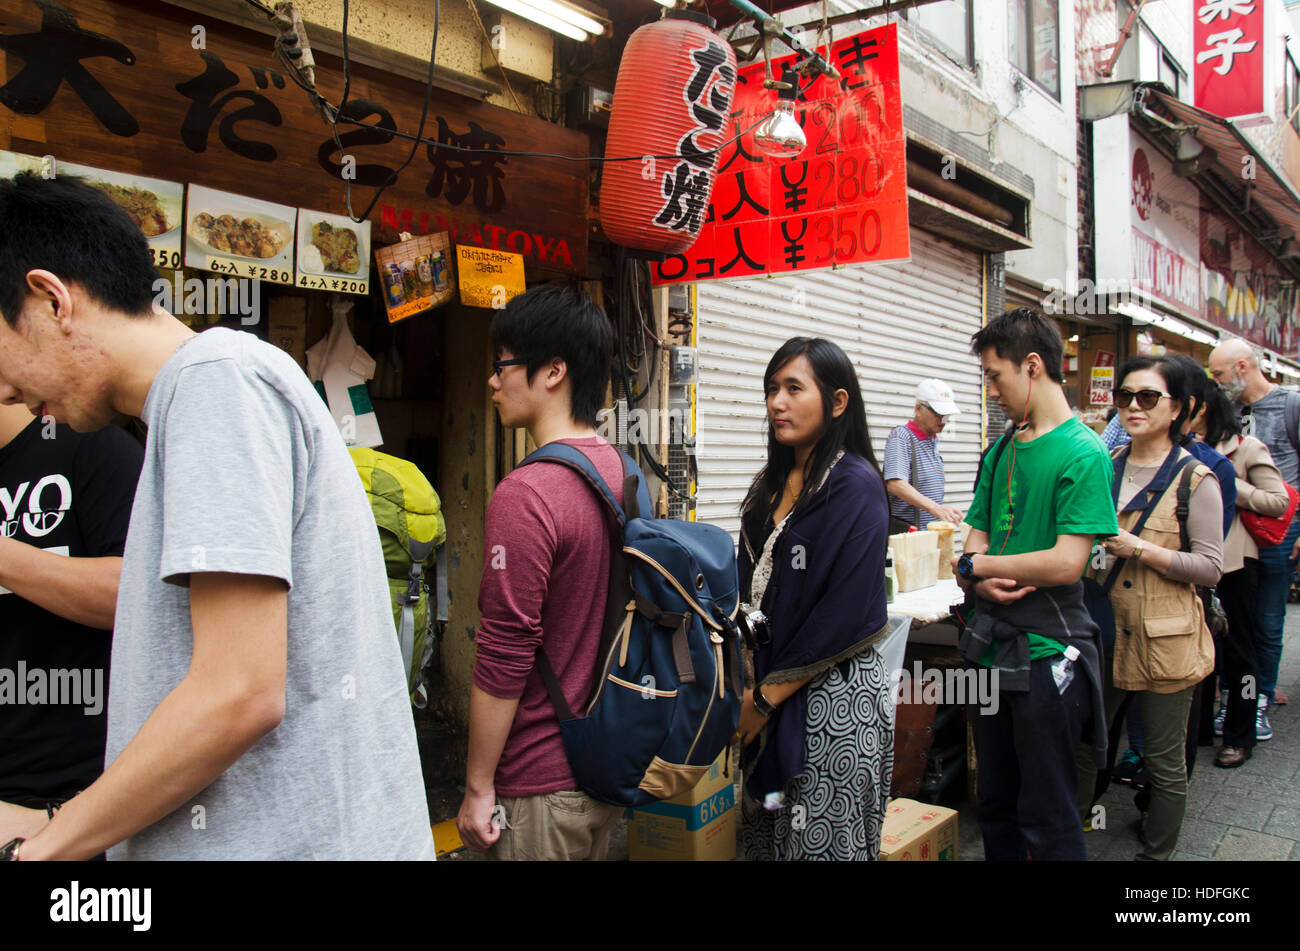 Japanese people and travelers foreigner standing queue buy takoyaki is a ball-shaped japanese snack at shop in Ameyoko Stock Photo